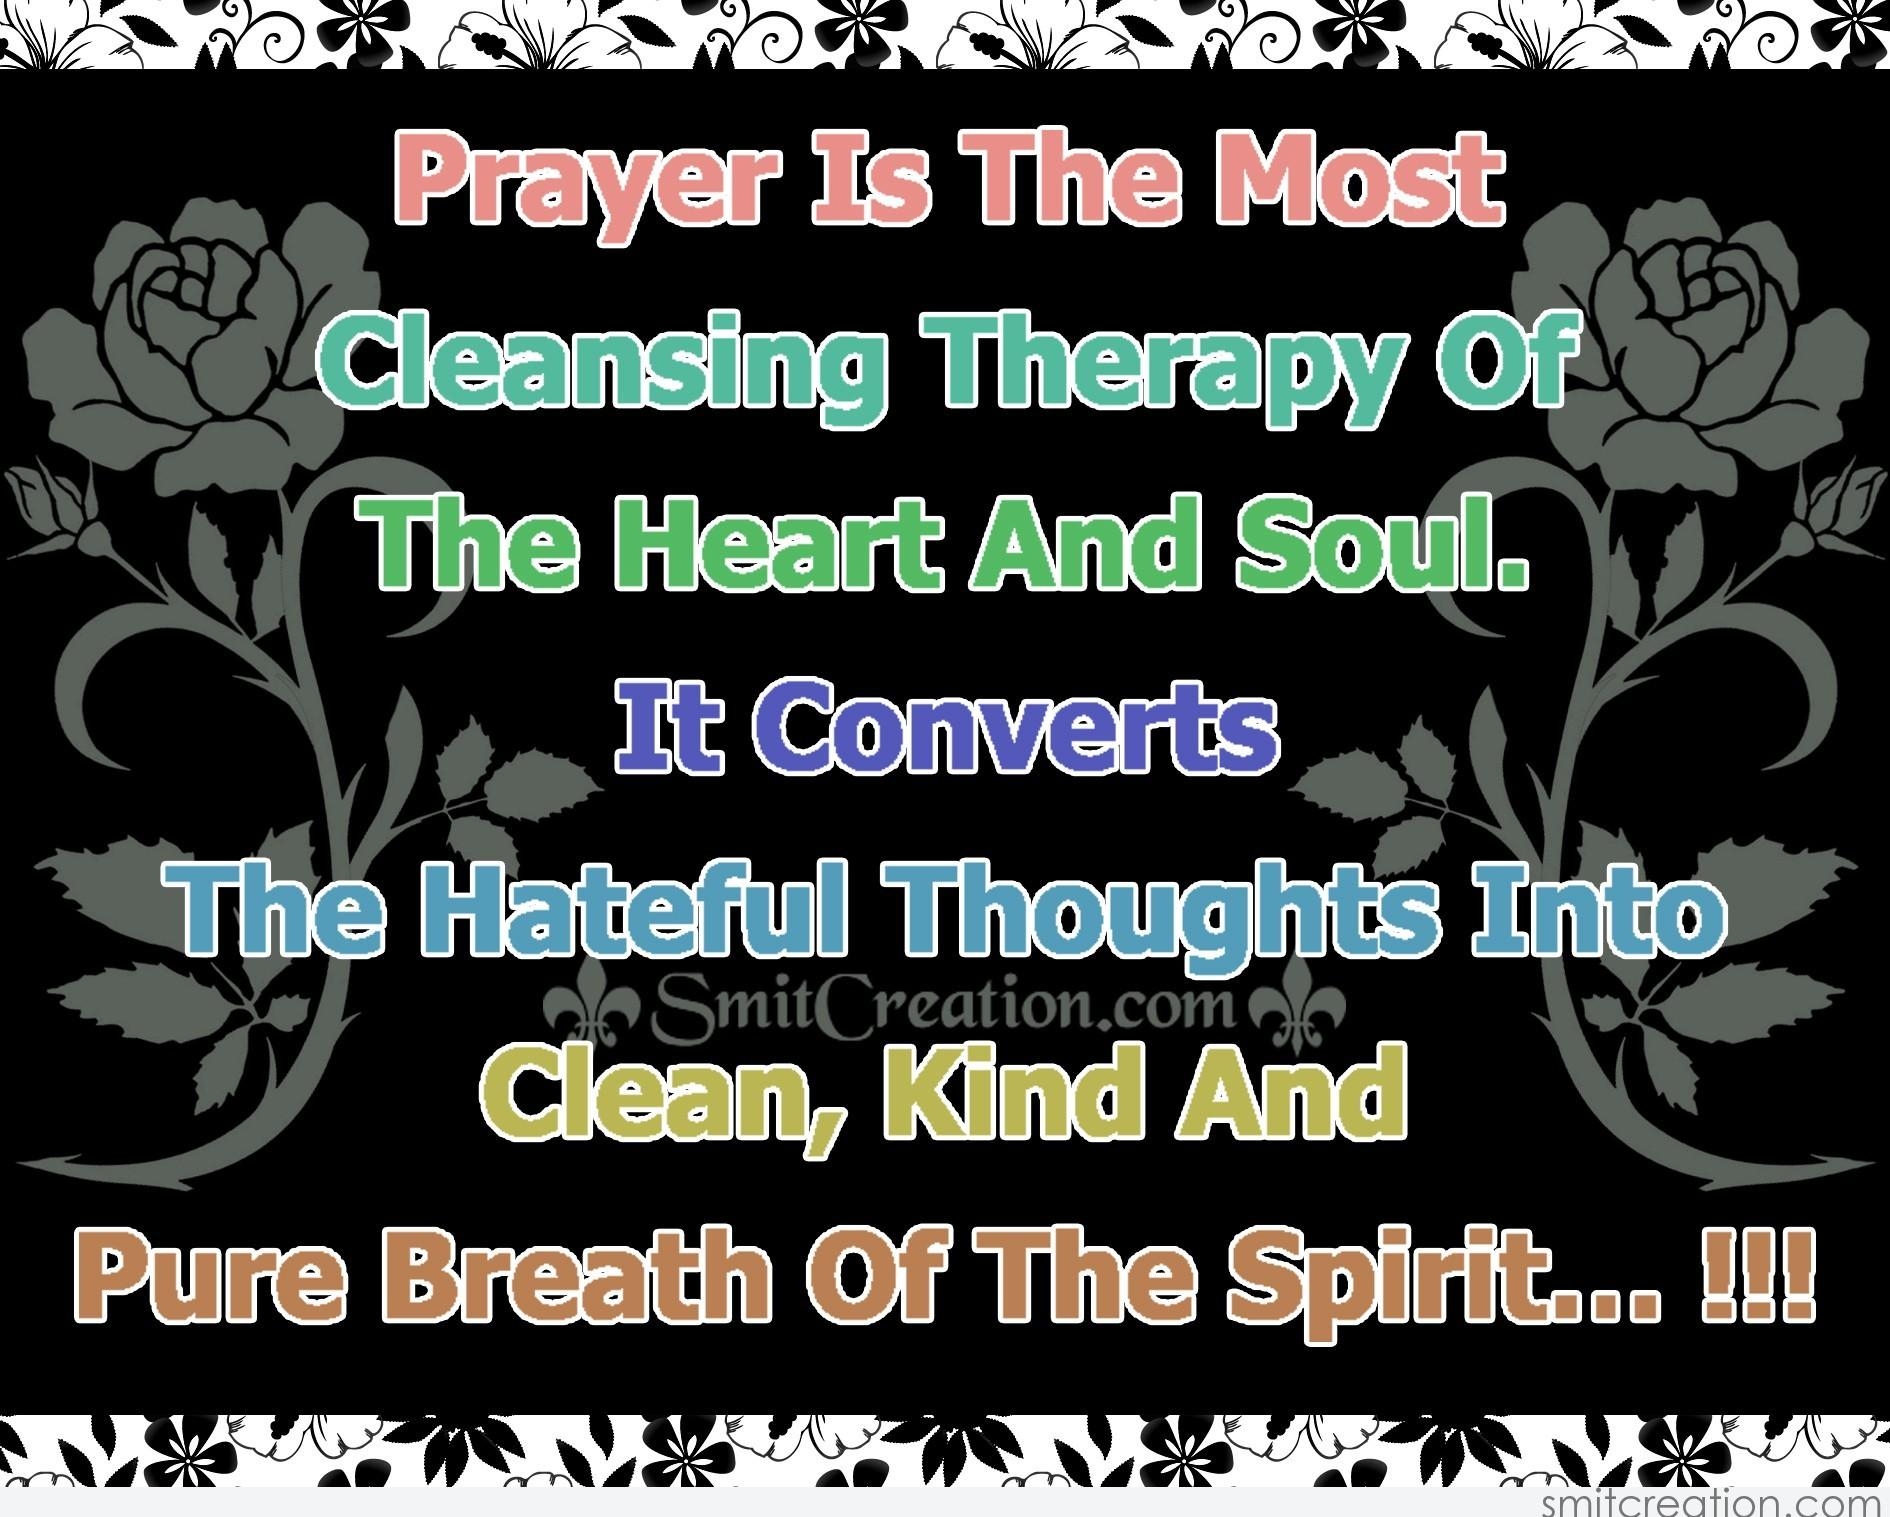 Prayer Is The Most Cleansing Therapy Of The Heart And Soul